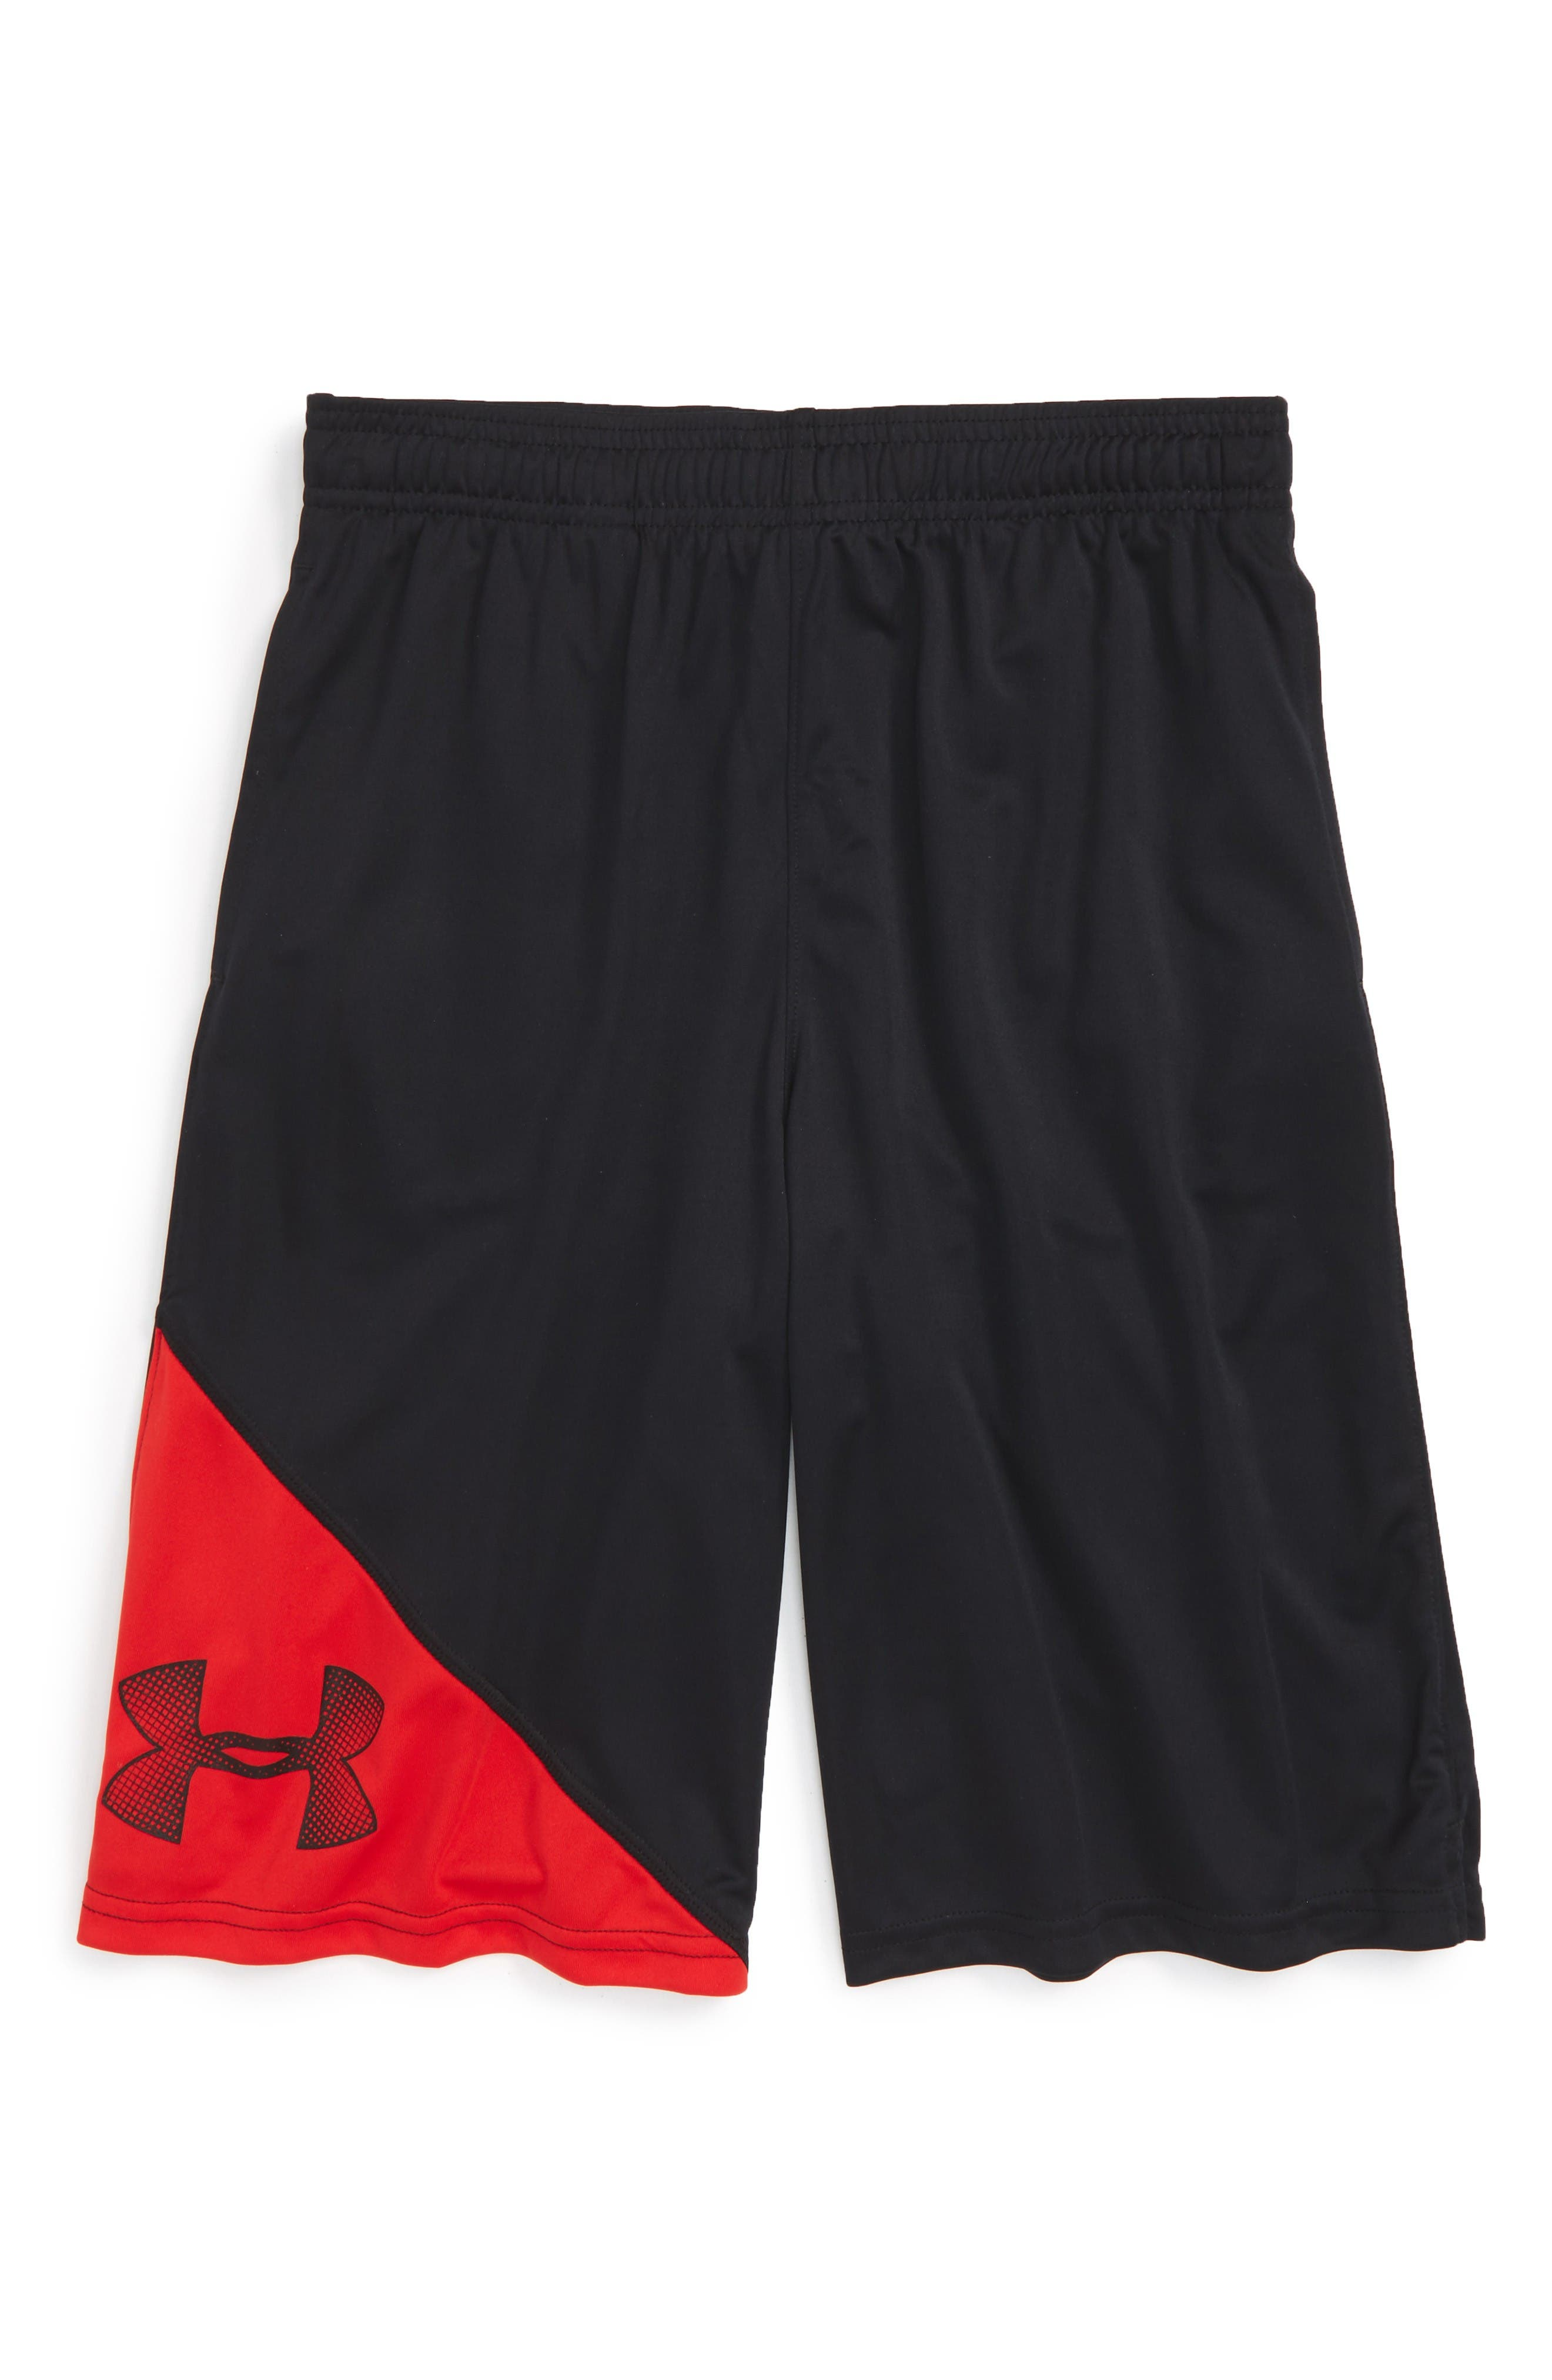 Main Image - Under Armour 'Tech™' Athletic Shorts (Little Boys & Big Boys)